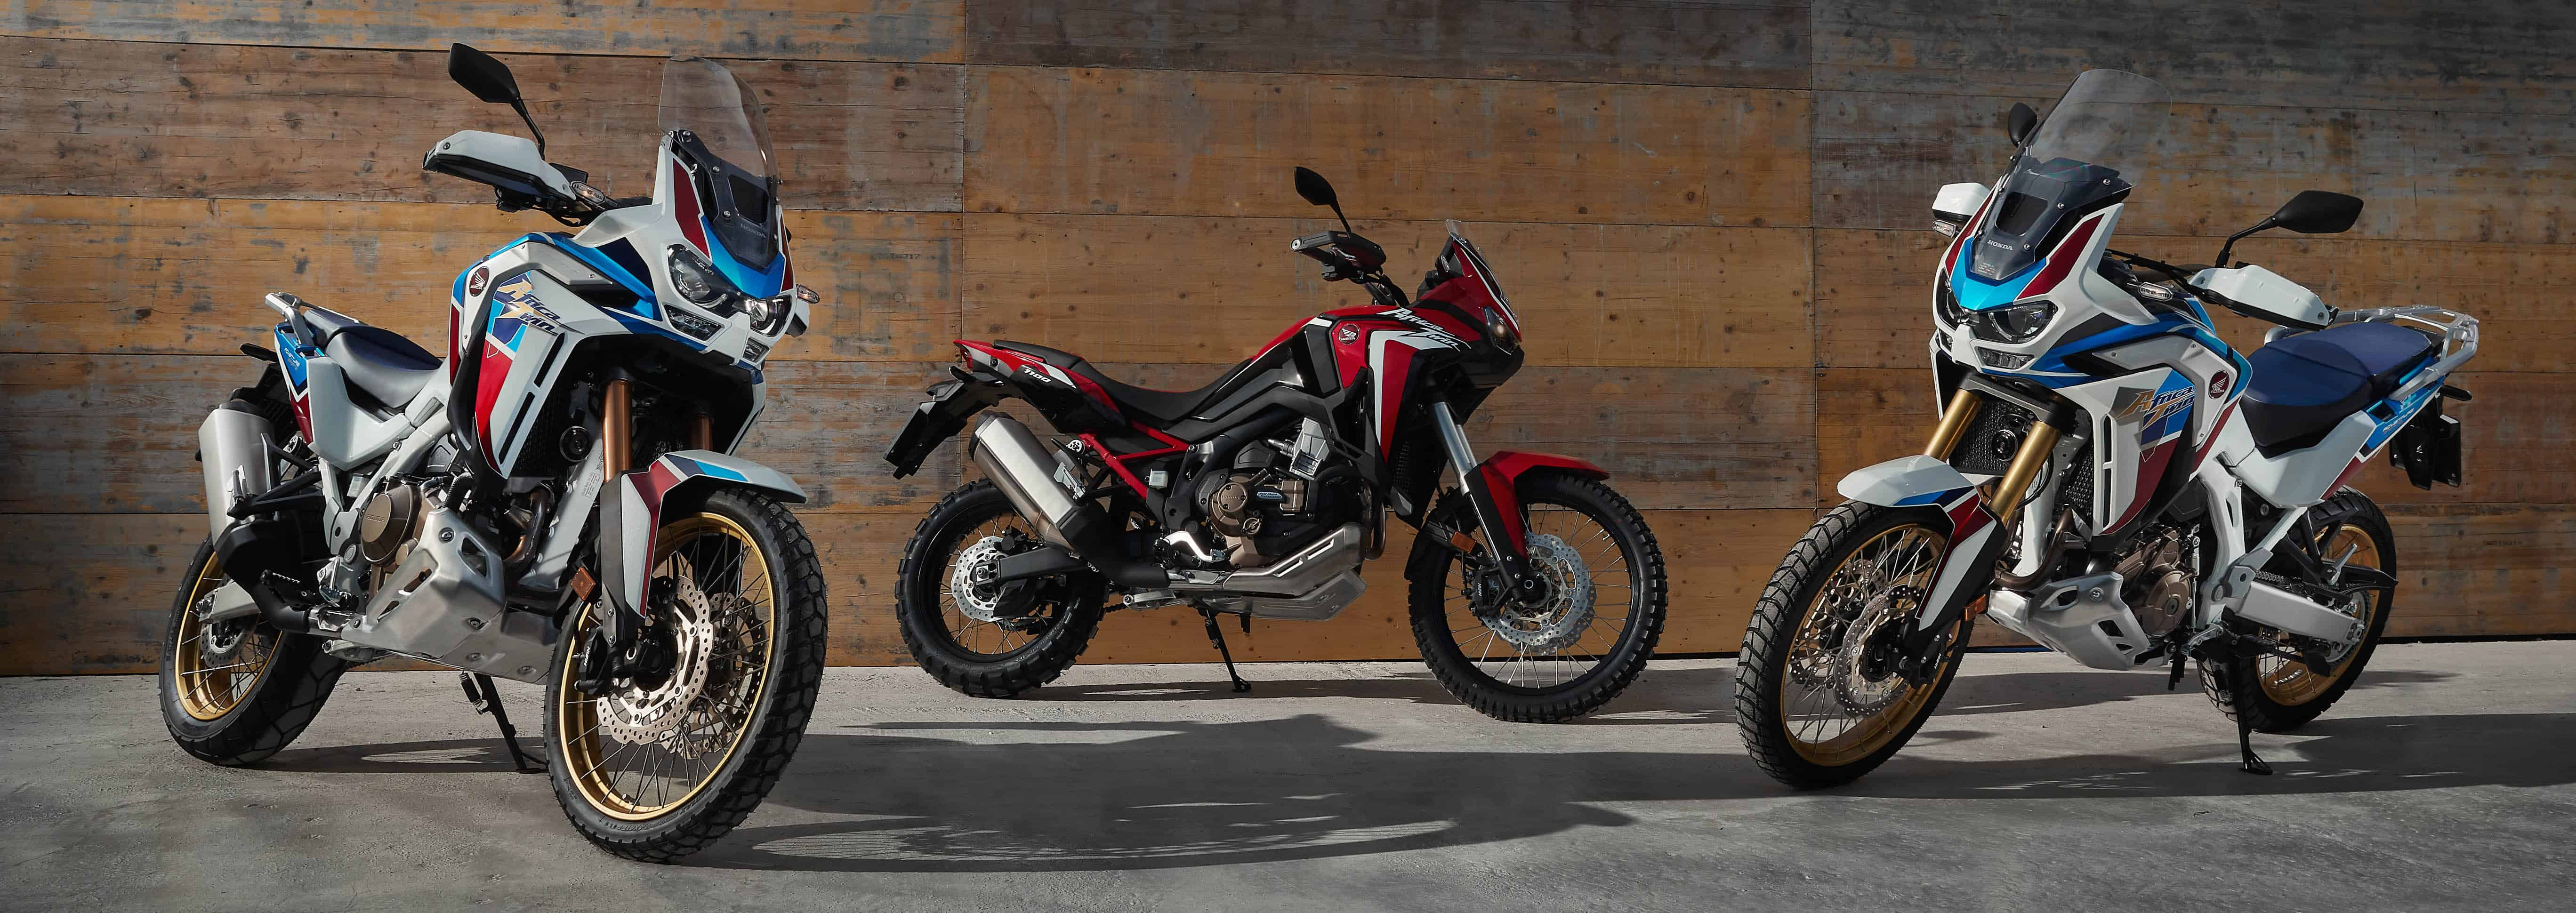 2020 HOND CRF1100L AFRICA TWIN